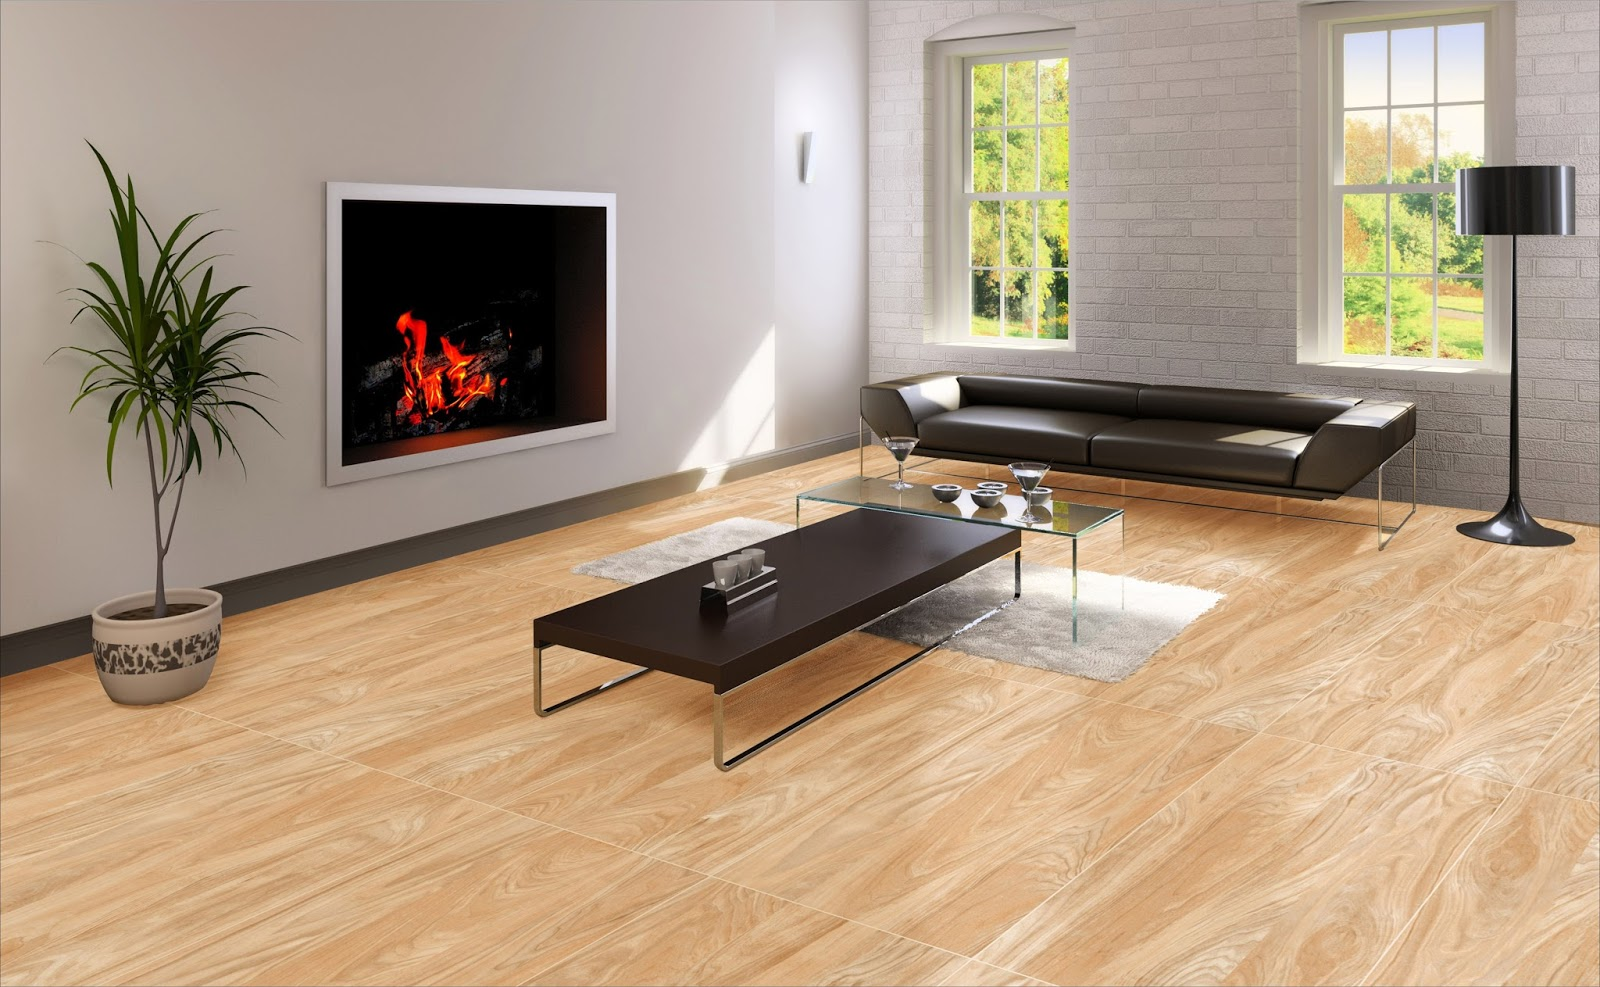 Tiles manufacturers in india mostly people prefer to use tiles for flooring because it is the most affordable and durable product tiles can be used for a long run because of its dailygadgetfo Choice Image